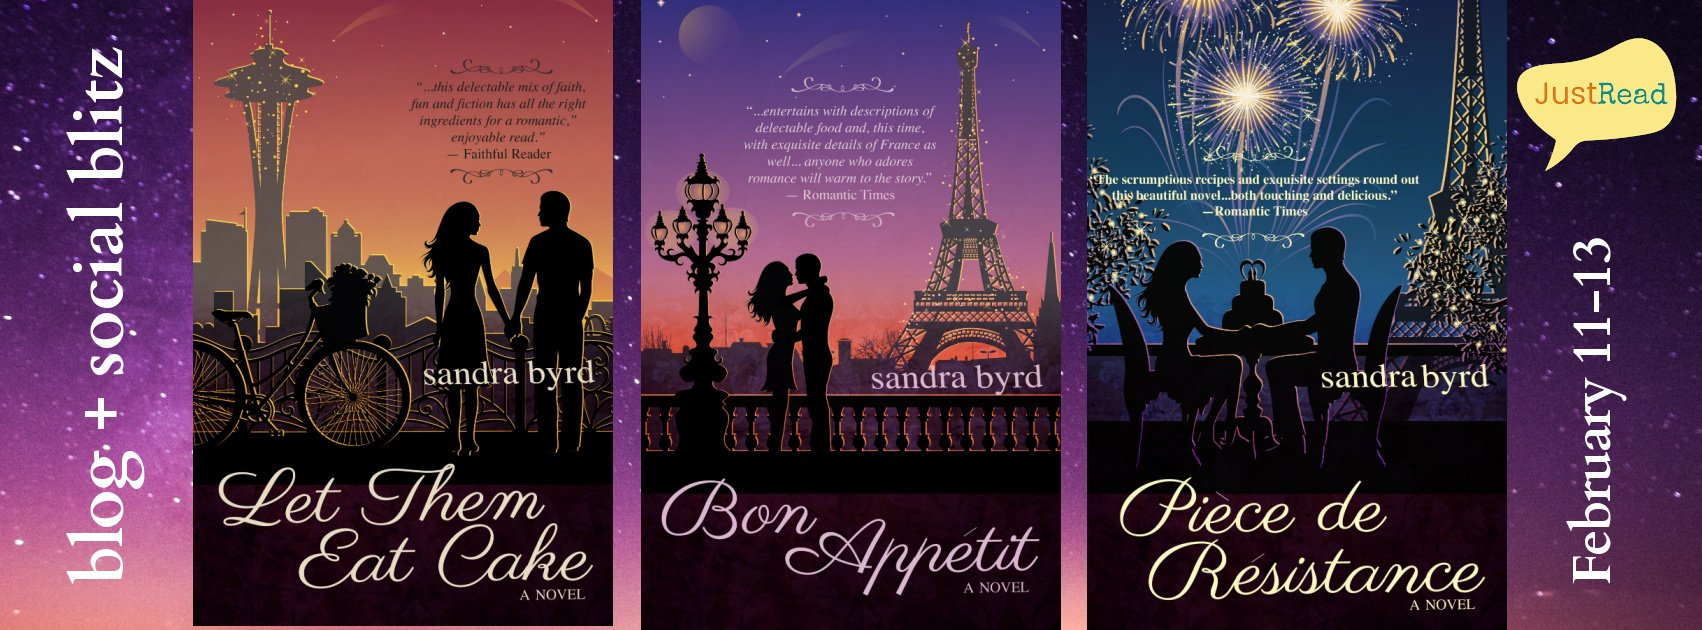 French Twist series JustRead Blog + Social Blitz